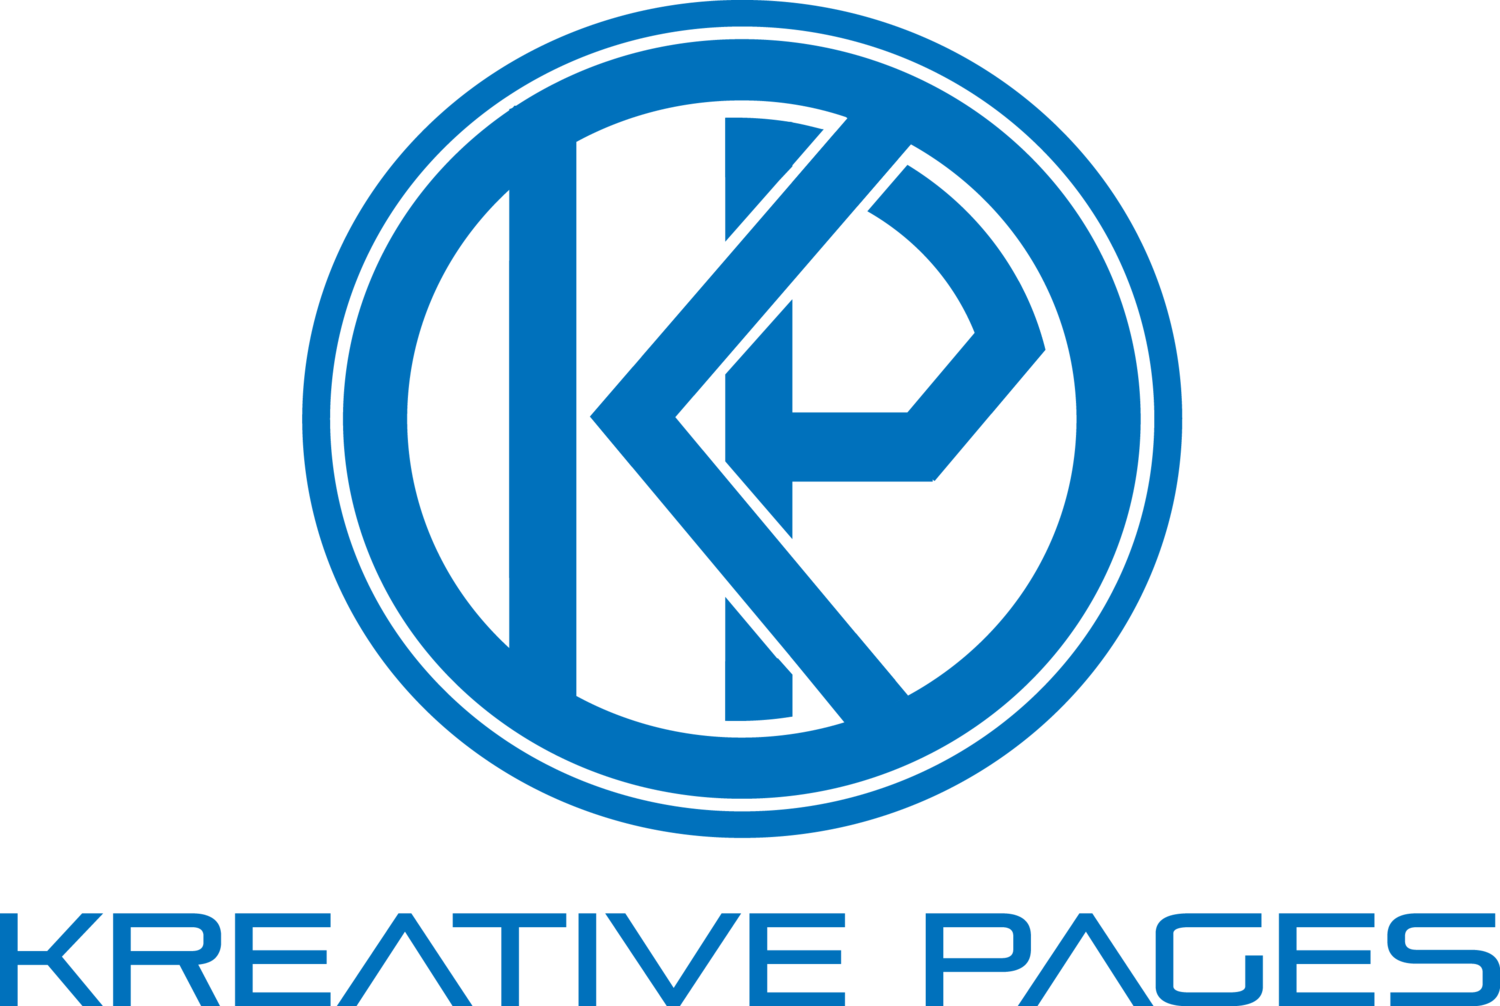 Kreative Pages